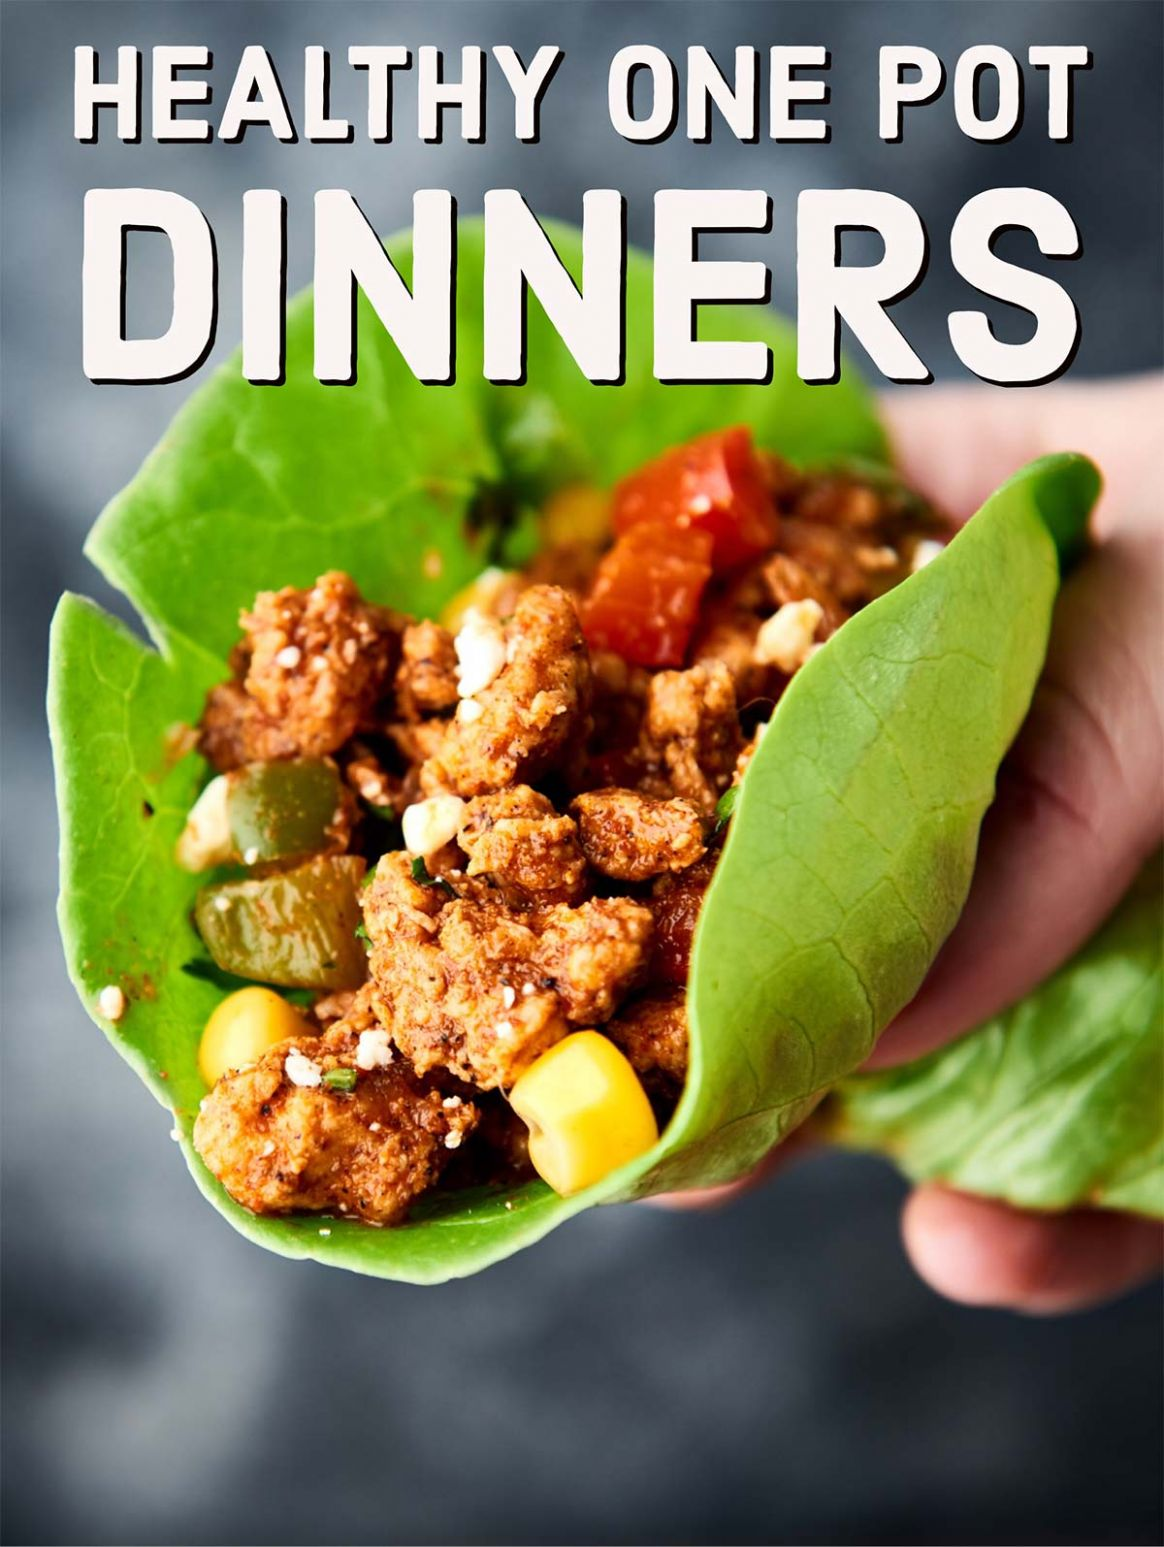 Healthy One Pot Dinner Recipes - Show Me the Yummy - Recipes Dinner For One